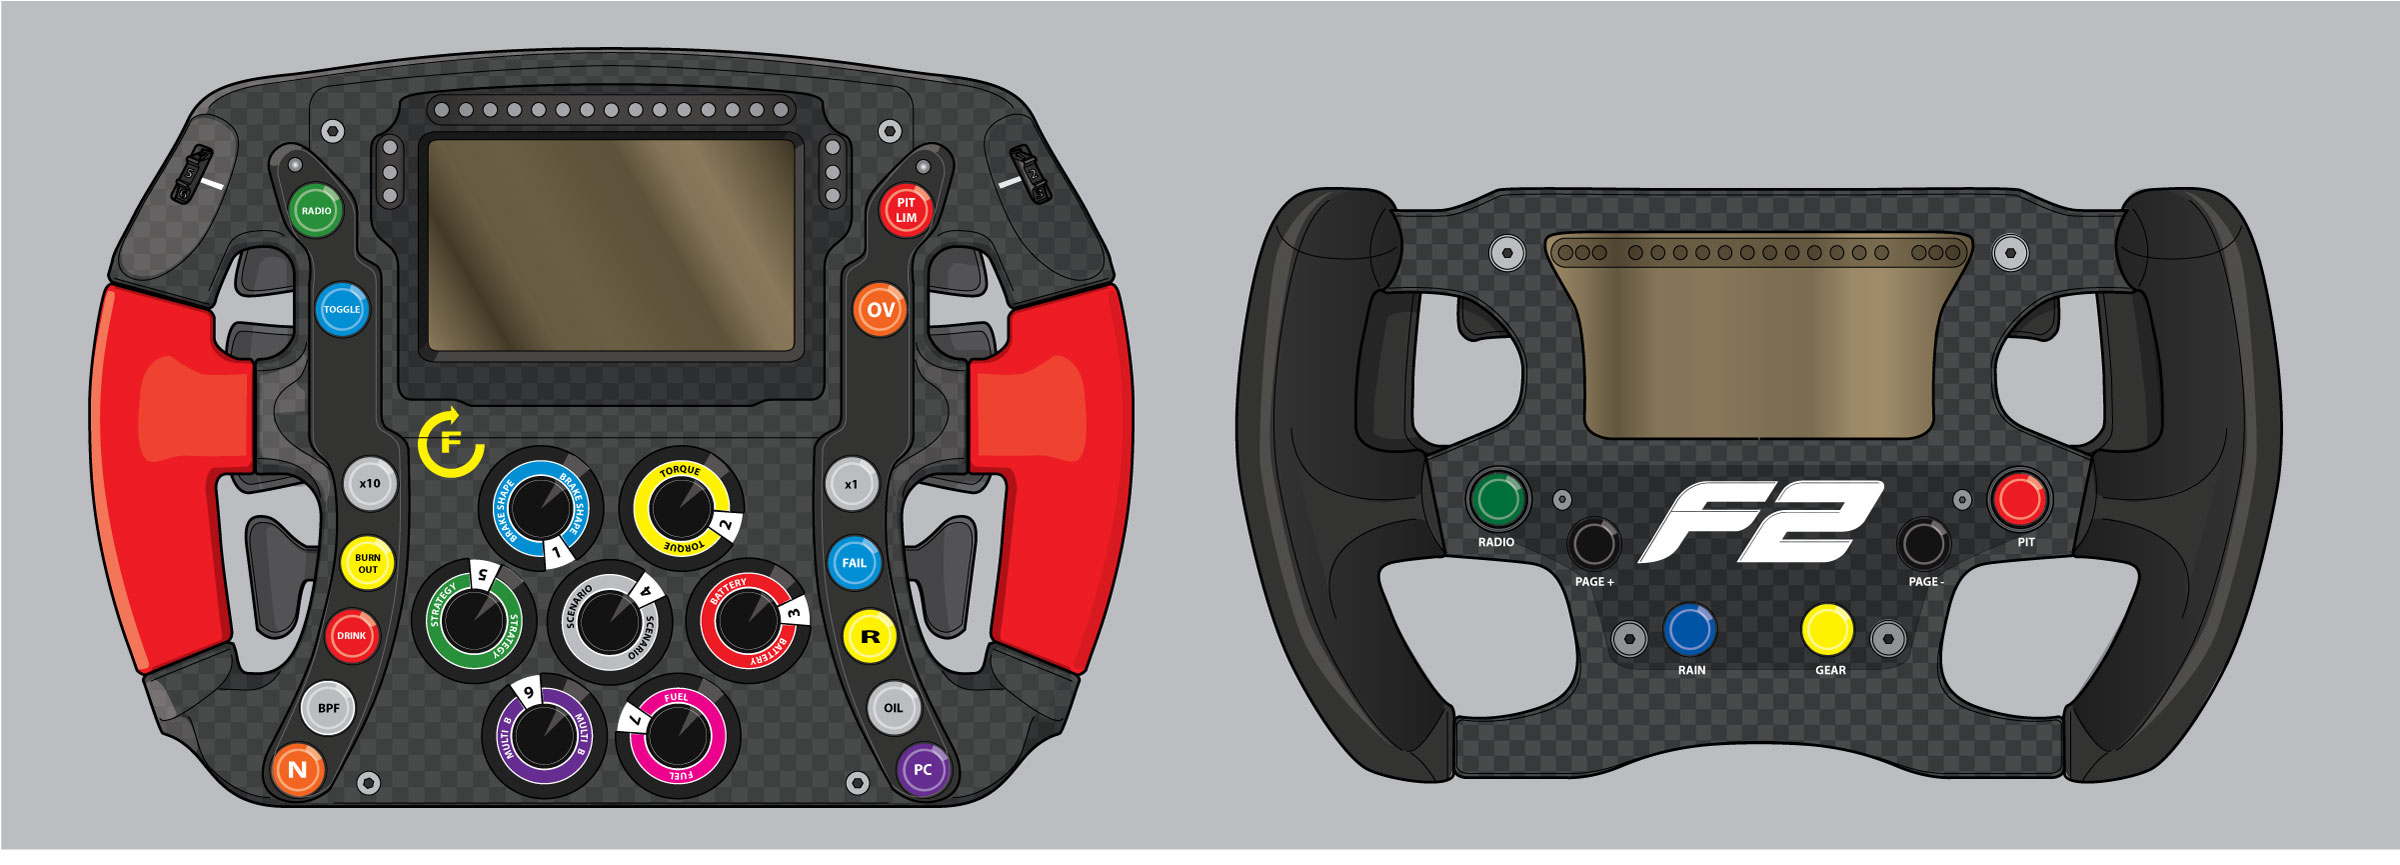 F1 vs F2 Steering Wheel Comparison